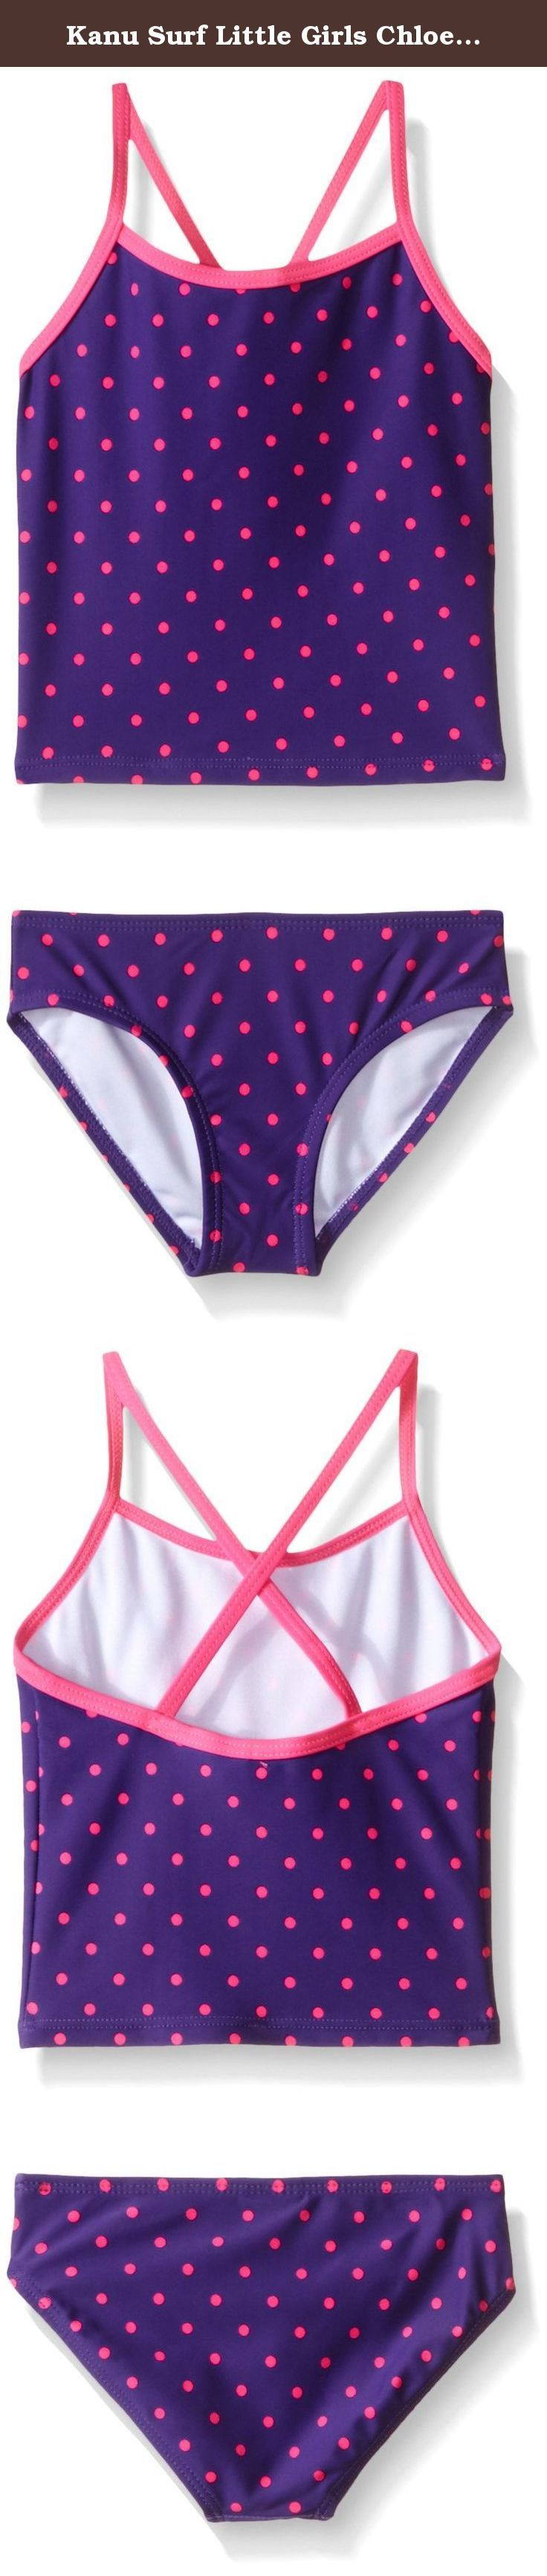 Kanu Surf Little Girls Chloe Tankini Swimsuit, Purple, 5. Kanu Surf presents our newest swim styles yet. Kanu, a surf and swim lifestyle brand, is well known for great prints and colors along with high quality functional apparel for the whole family. All of our swimwear is made with a high quality nylon/spandex tricot fabric and are lined both front and back. All of our prints are available in 1 or 2 piece options. Kanu swimwear is great for the active athlete as well as for the…